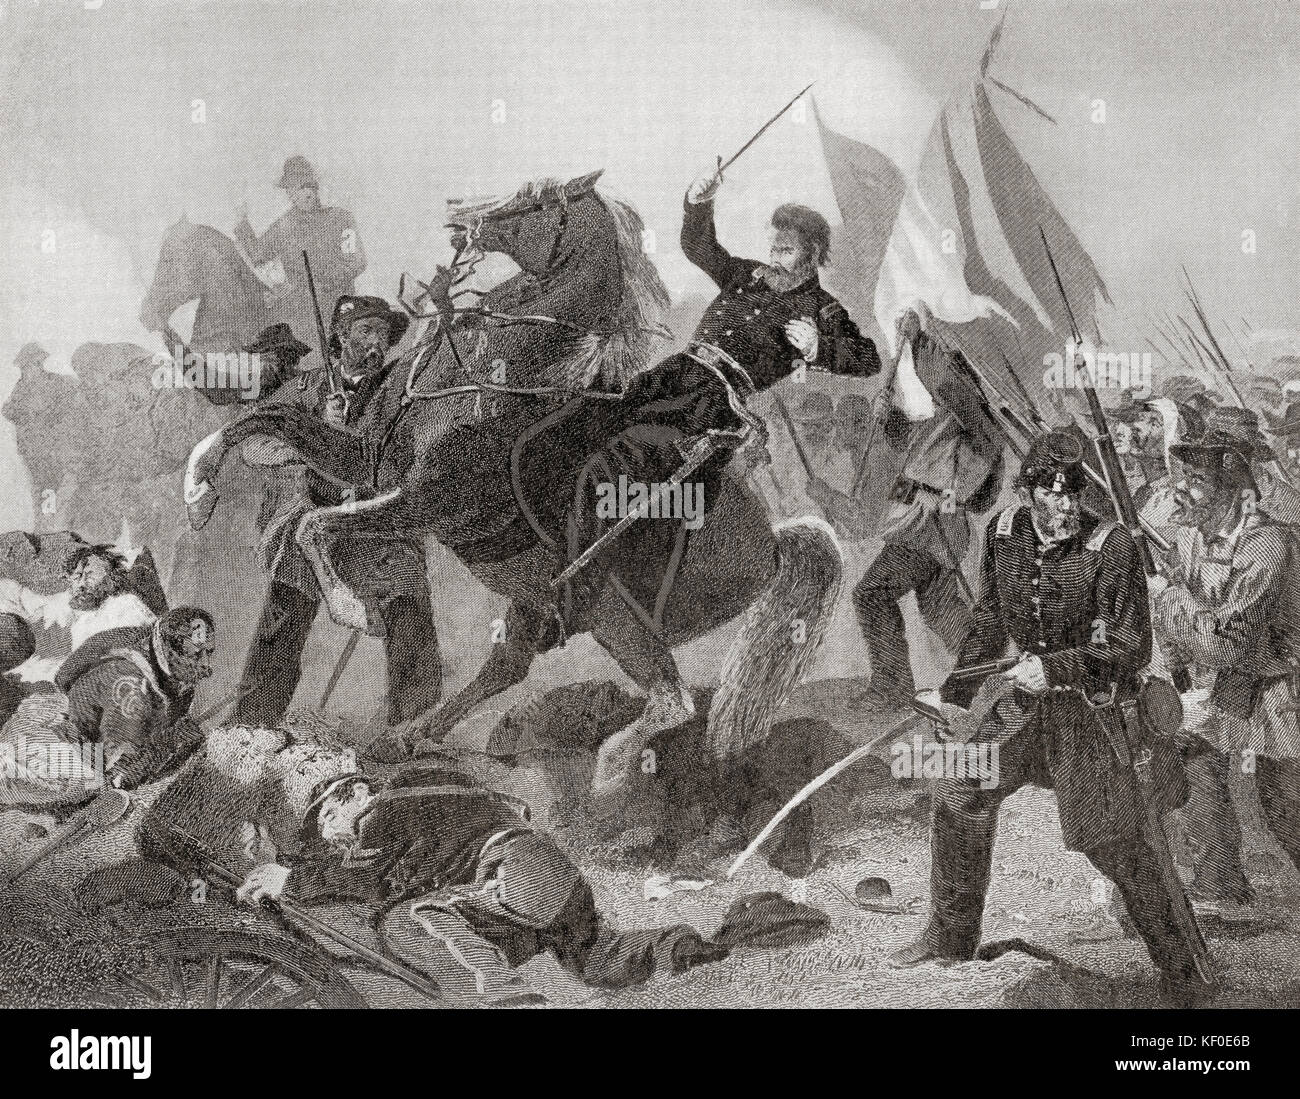 The Battle of Wilson's Creek, aka the Battle of Oak Hills, 1861, the first major battle of the Trans-Mississippi - Stock Image